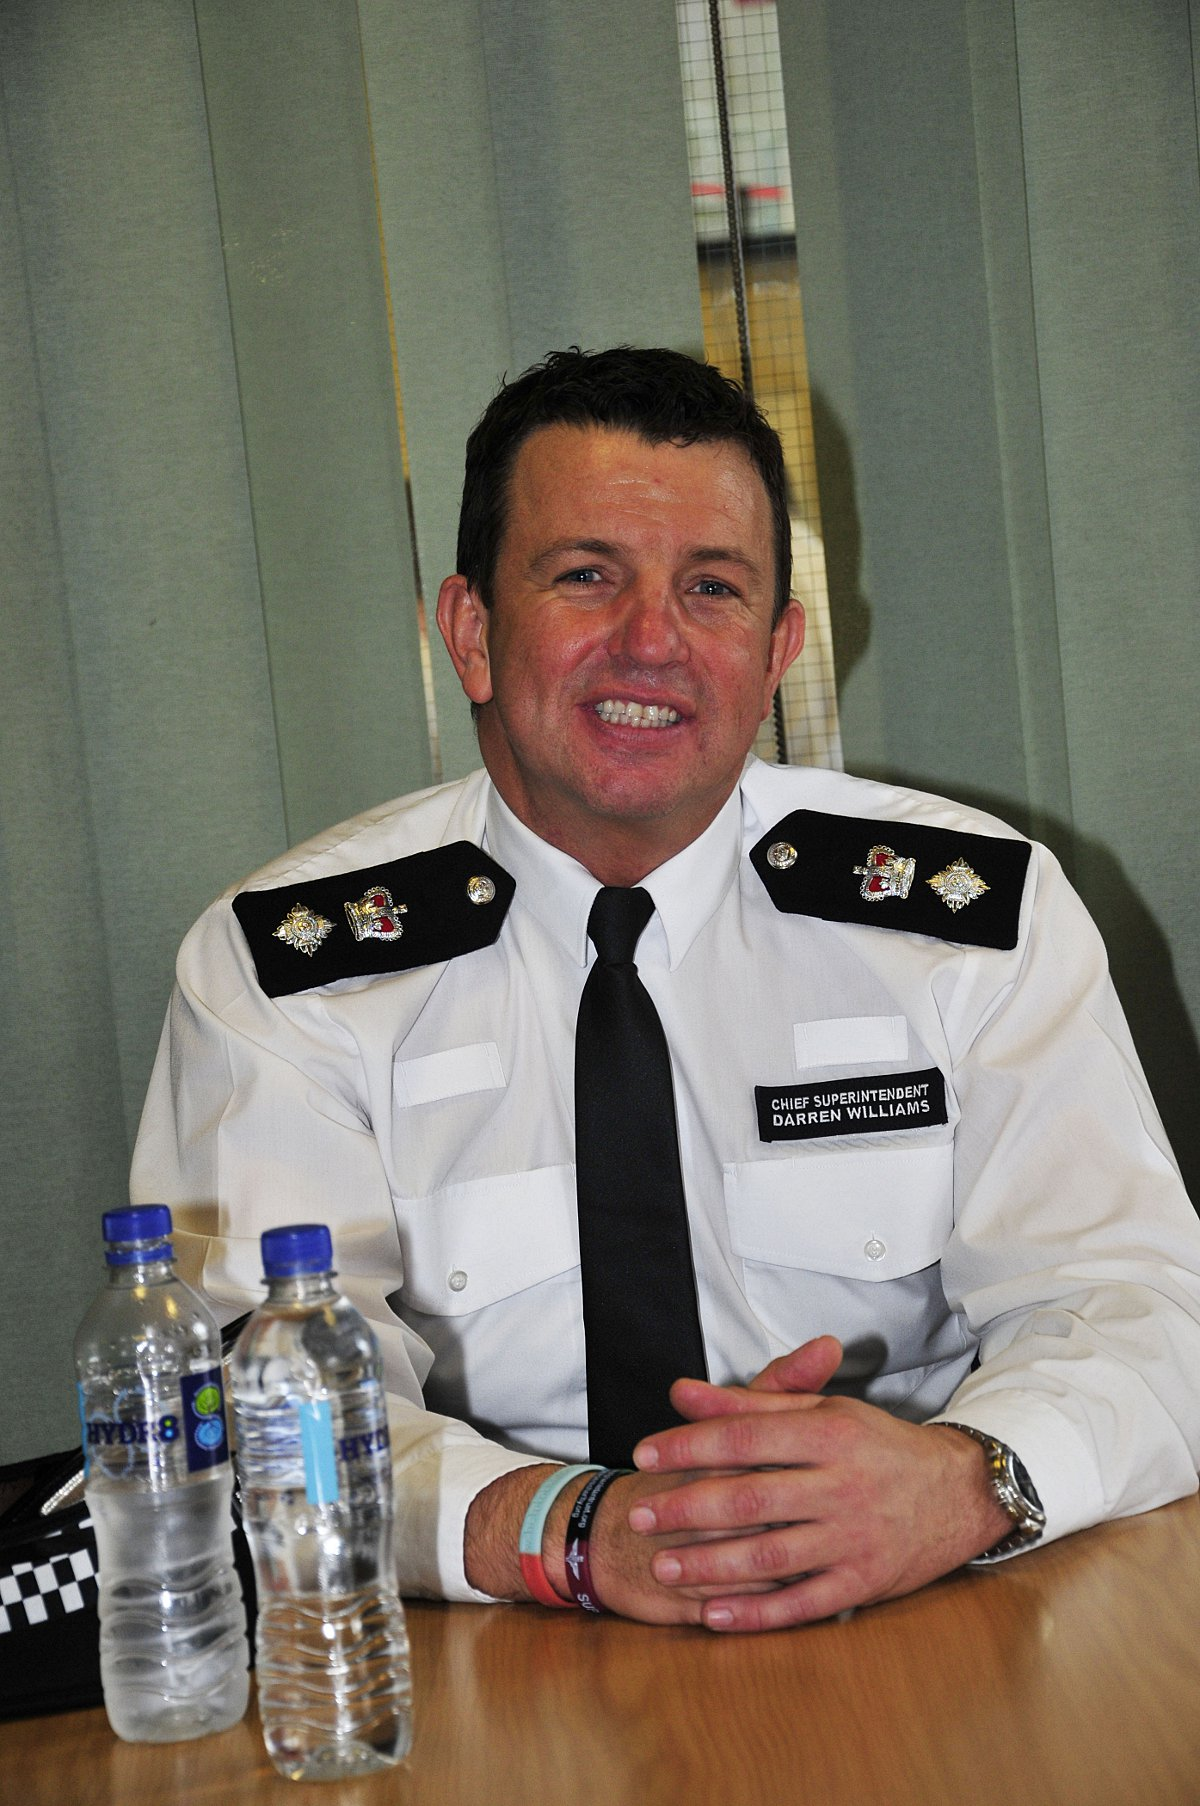 Darren Williams will not return to his role as borough commander of Merton